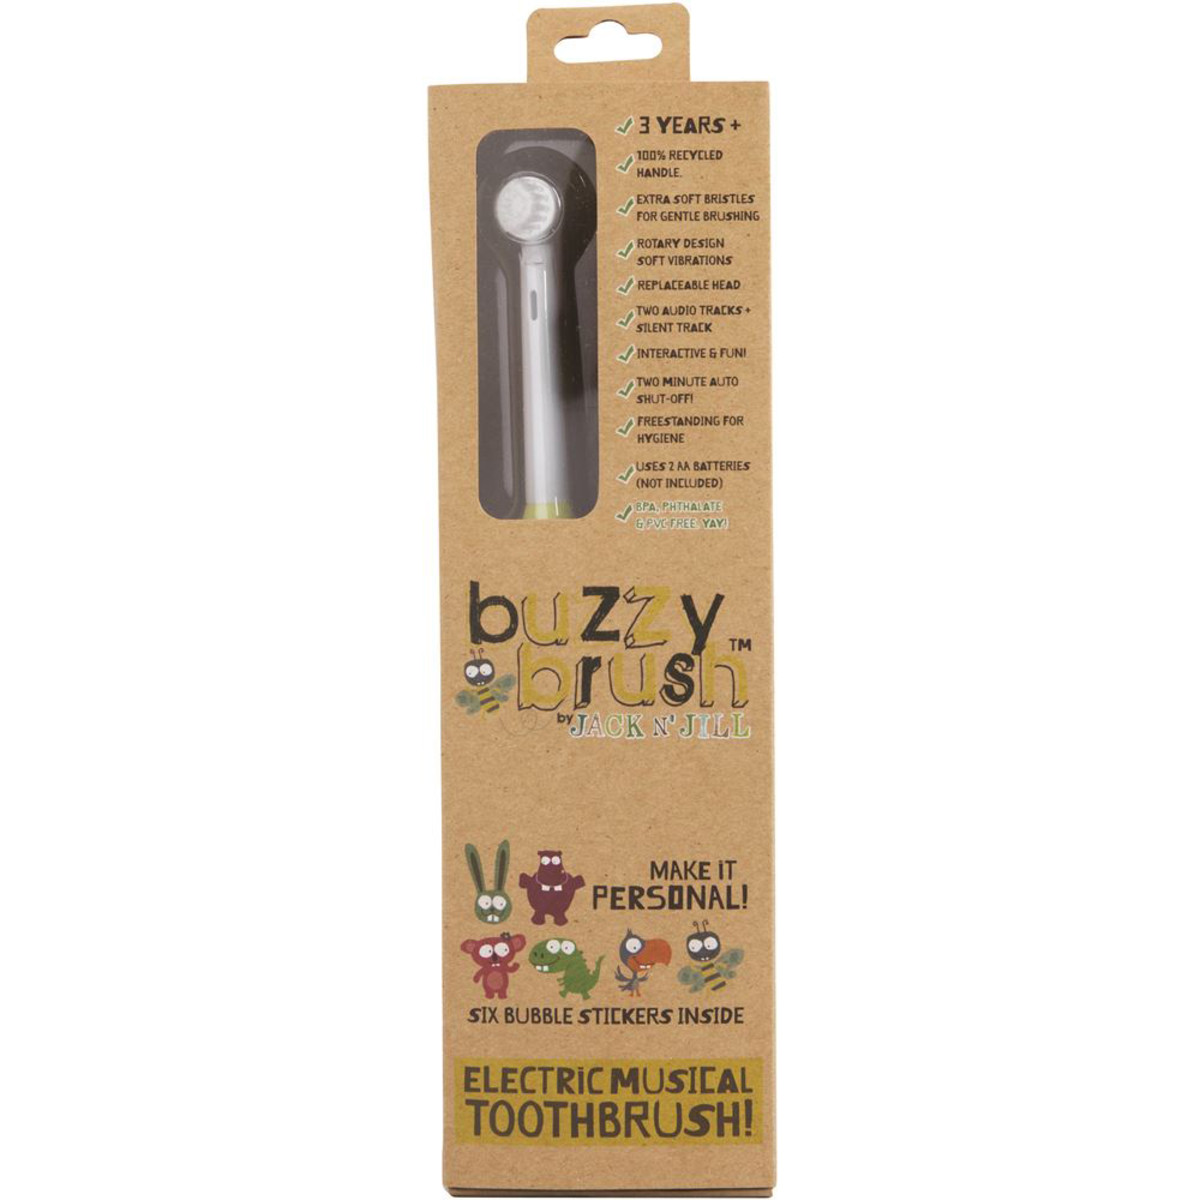 JACK N' JILL ELECTRICAL MUSICAL TOOTHBRUSH BUZZY BRUSH 3YEARS+